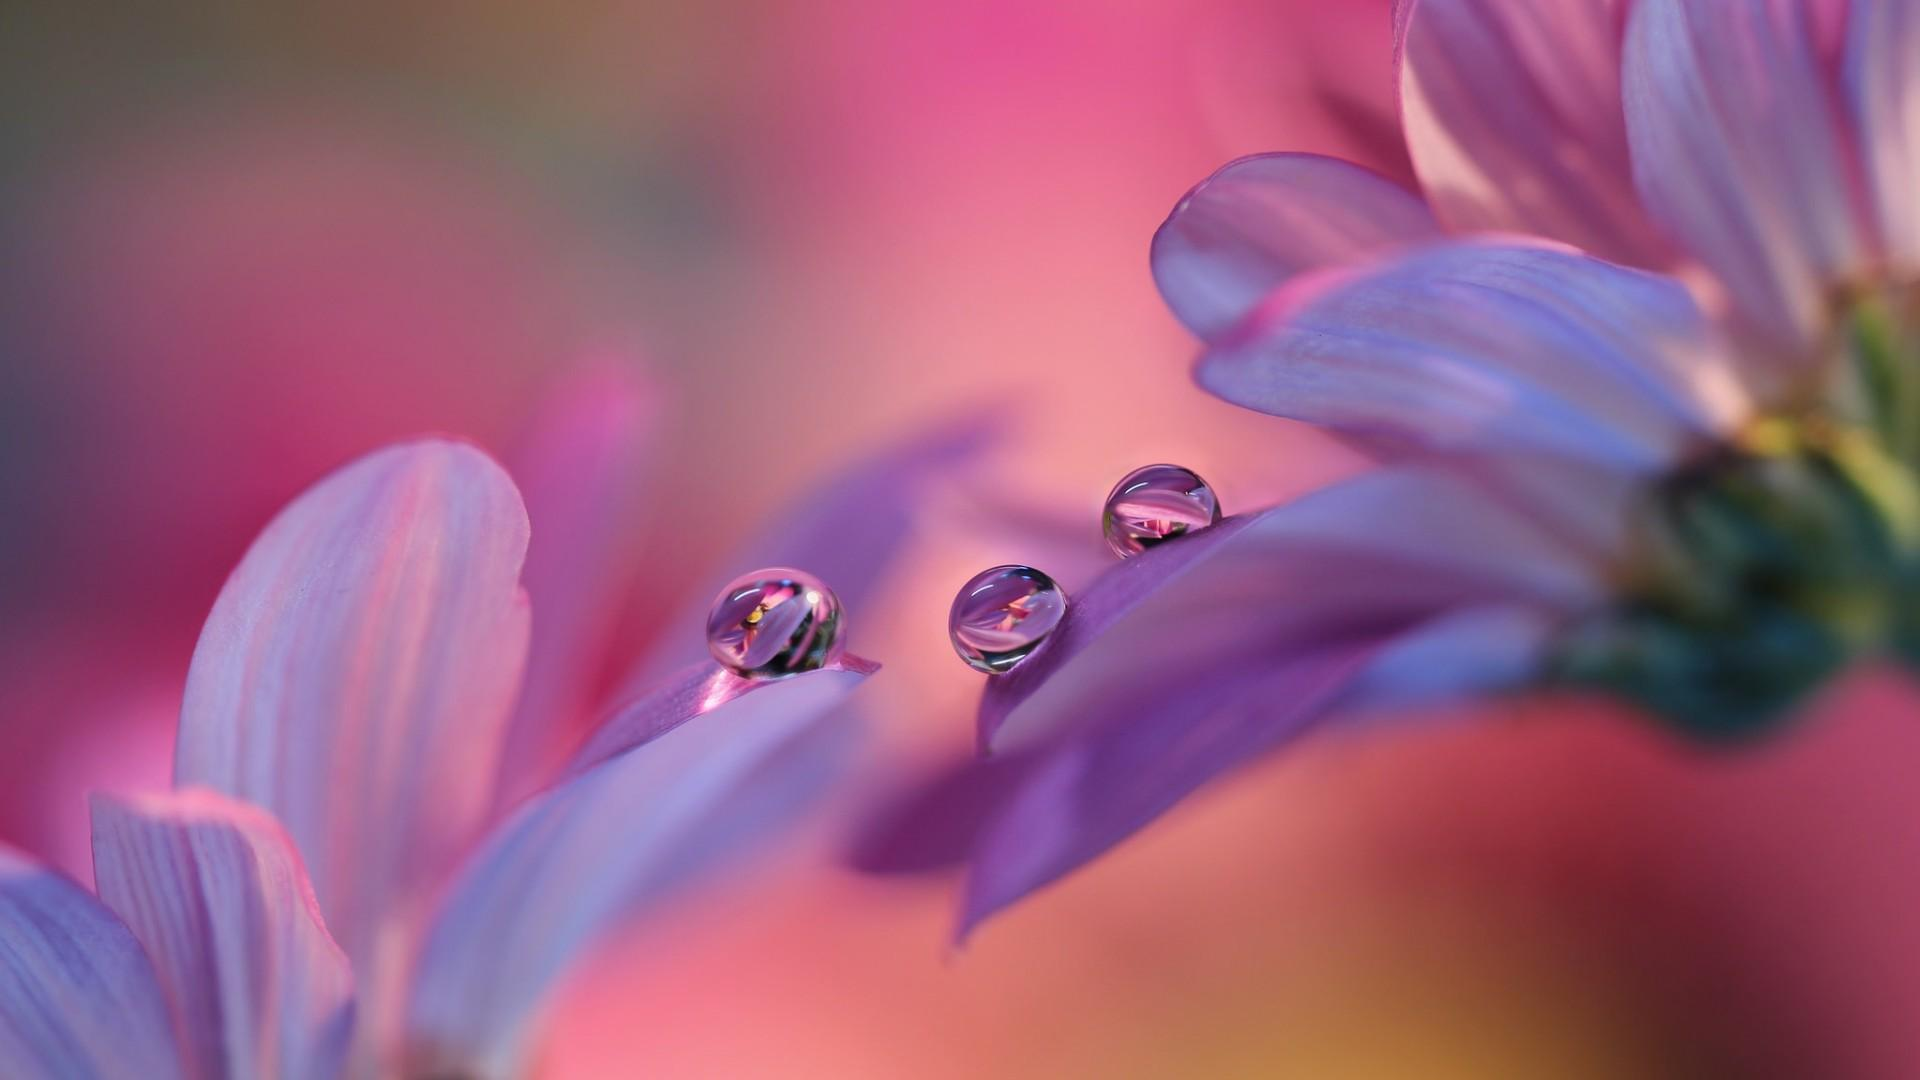 Dew Drops On The Flower - Macro Photography HD Wallpaper ...